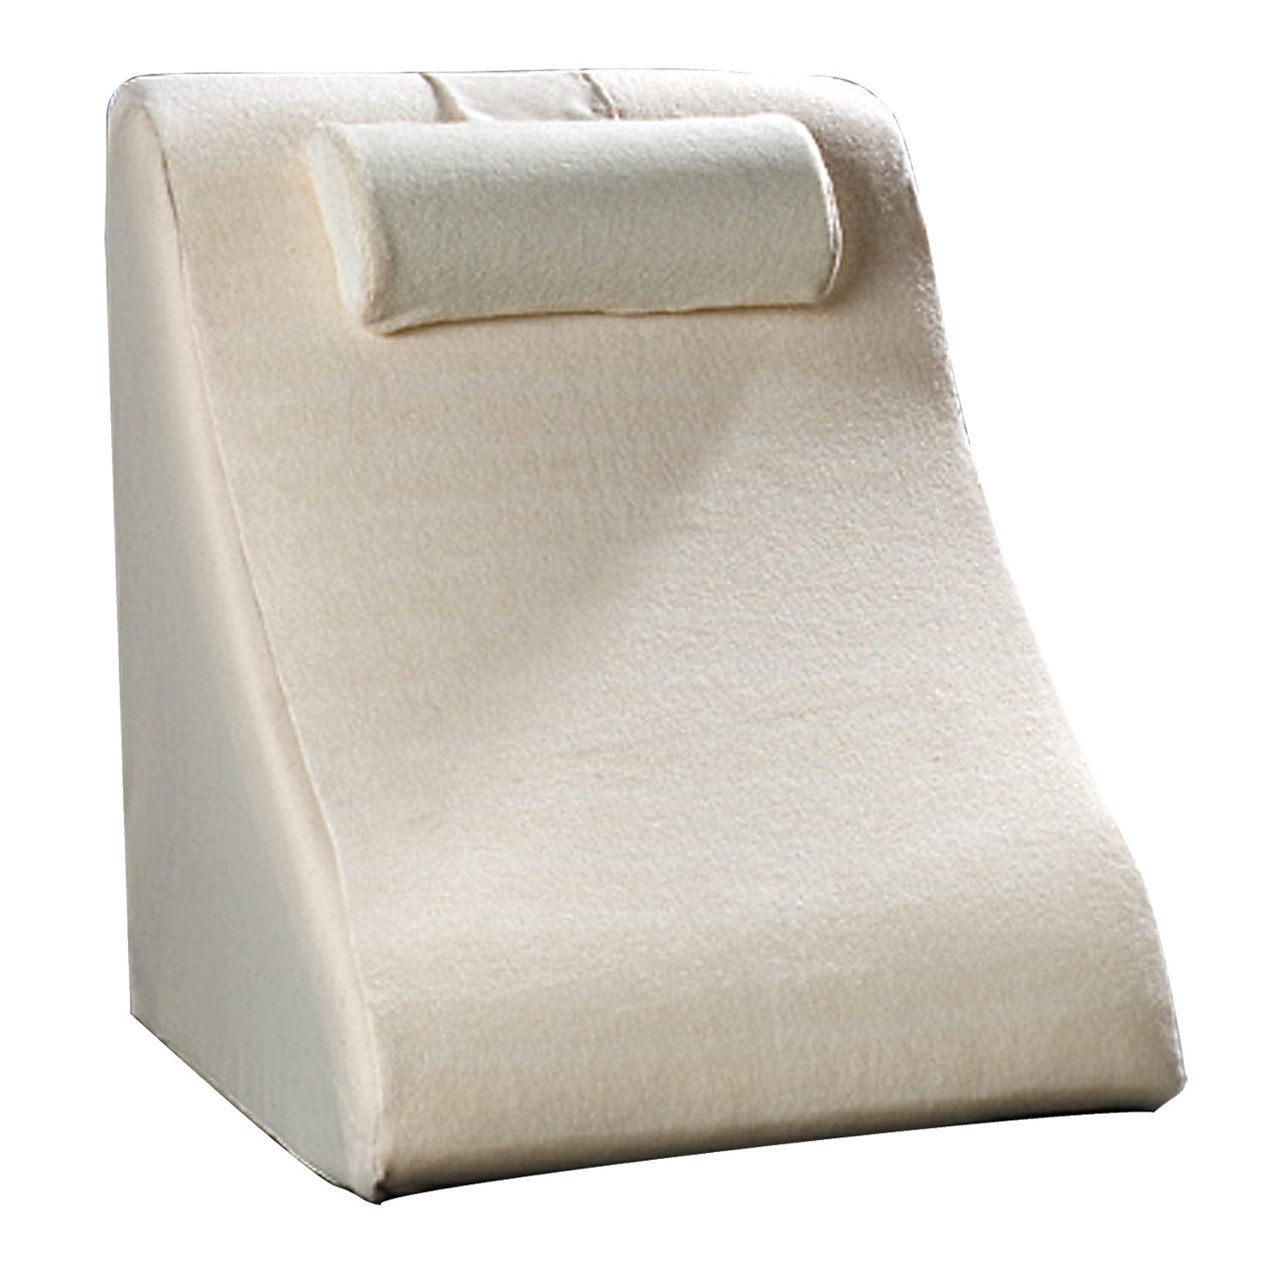 Maxiaids jobri spine reliever r extra large bed wedge for Back and neck support for bed